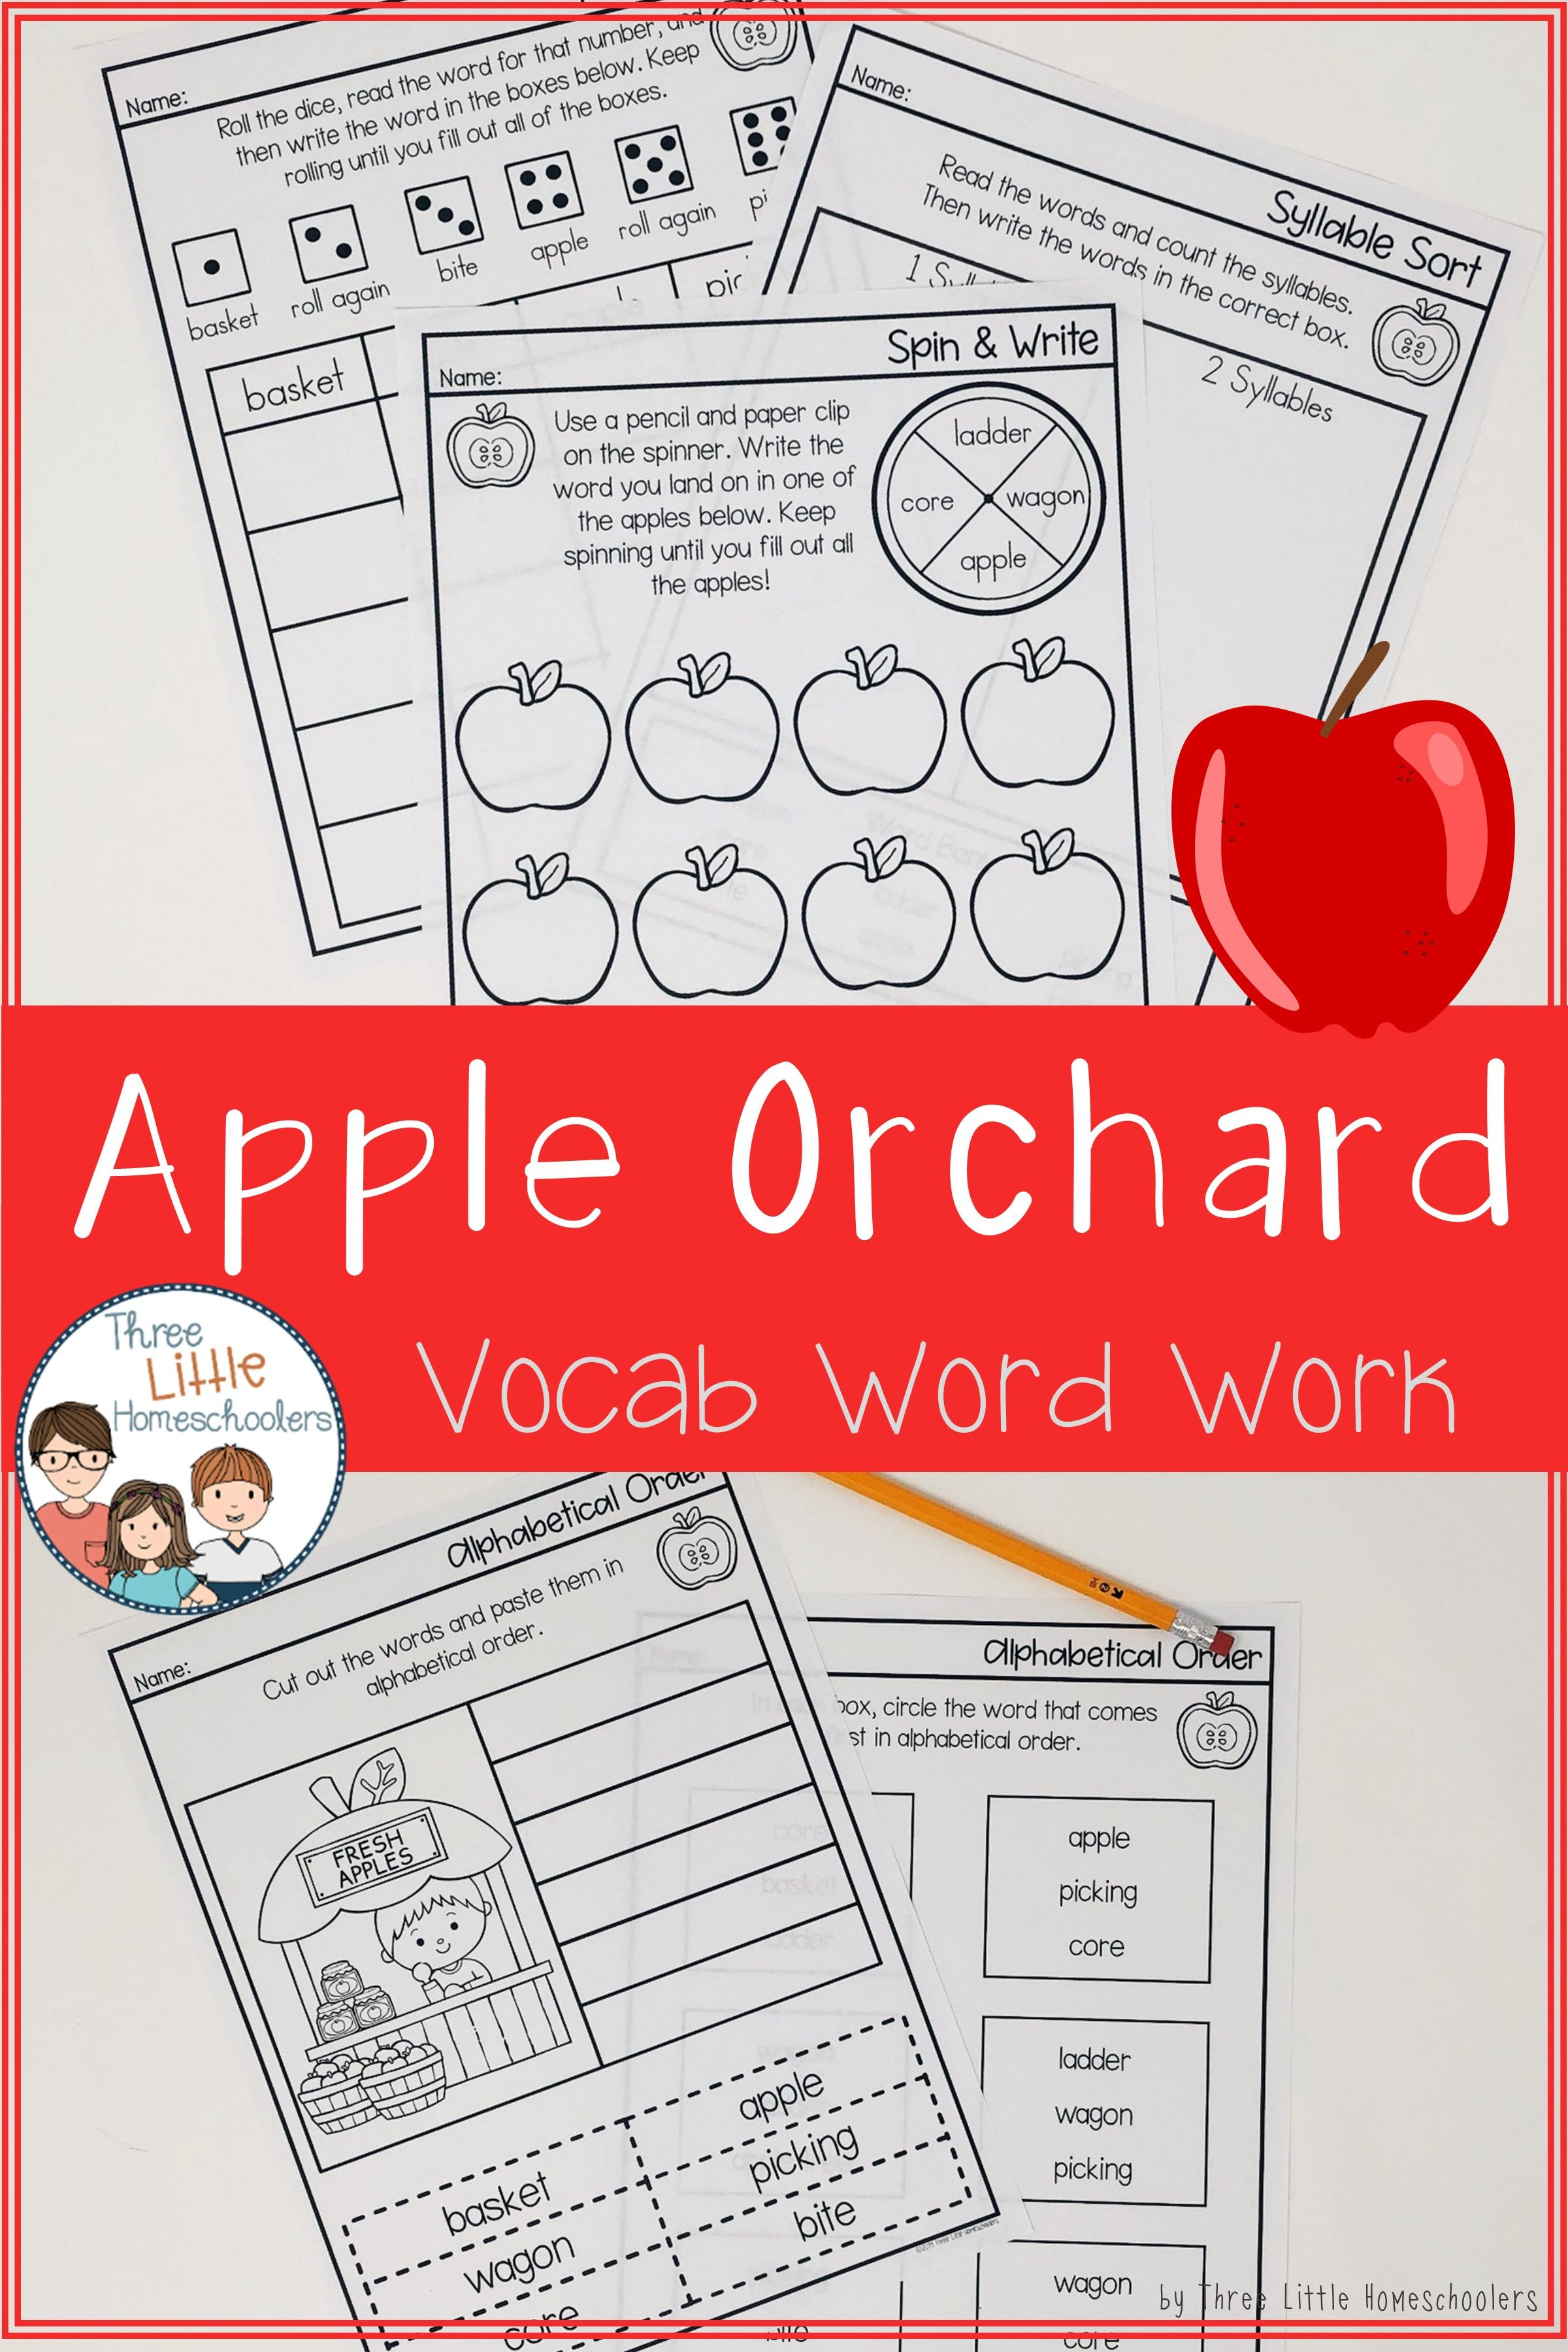 Apple Orchard Vocabulary Spelling Word Work